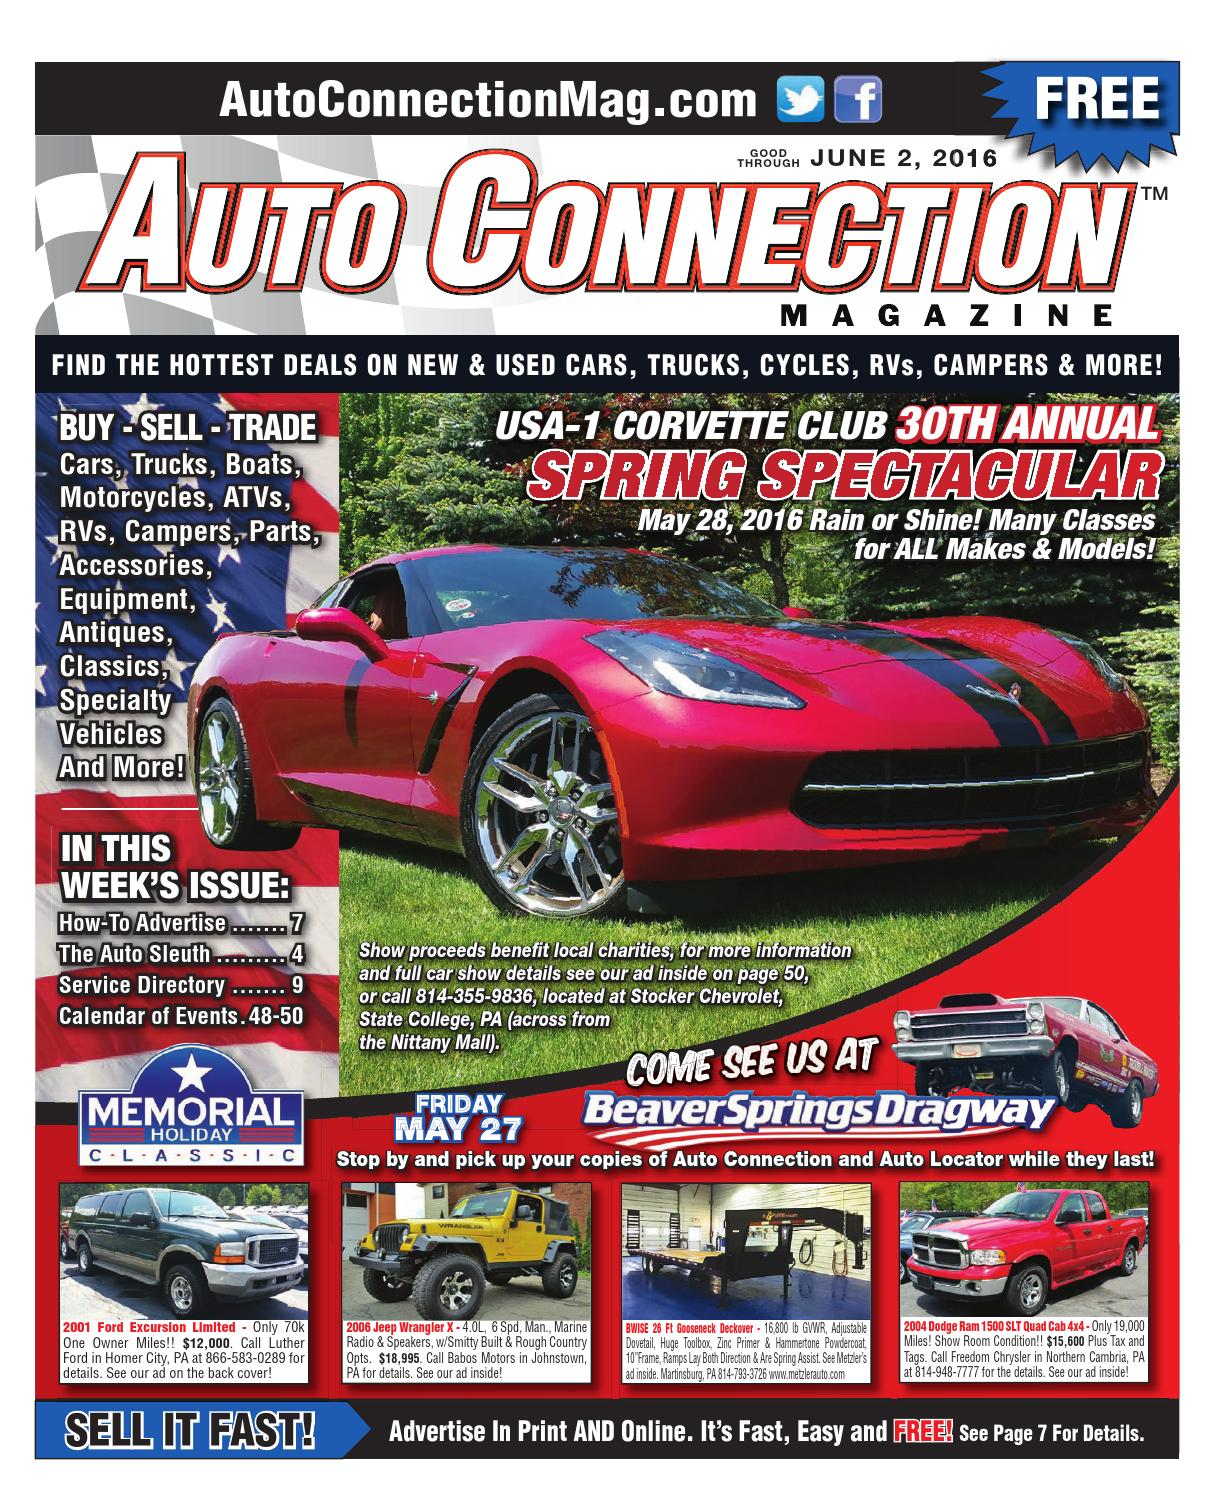 06-02-16 Auto Connection Magazine by Auto Connection Magazine - issuu